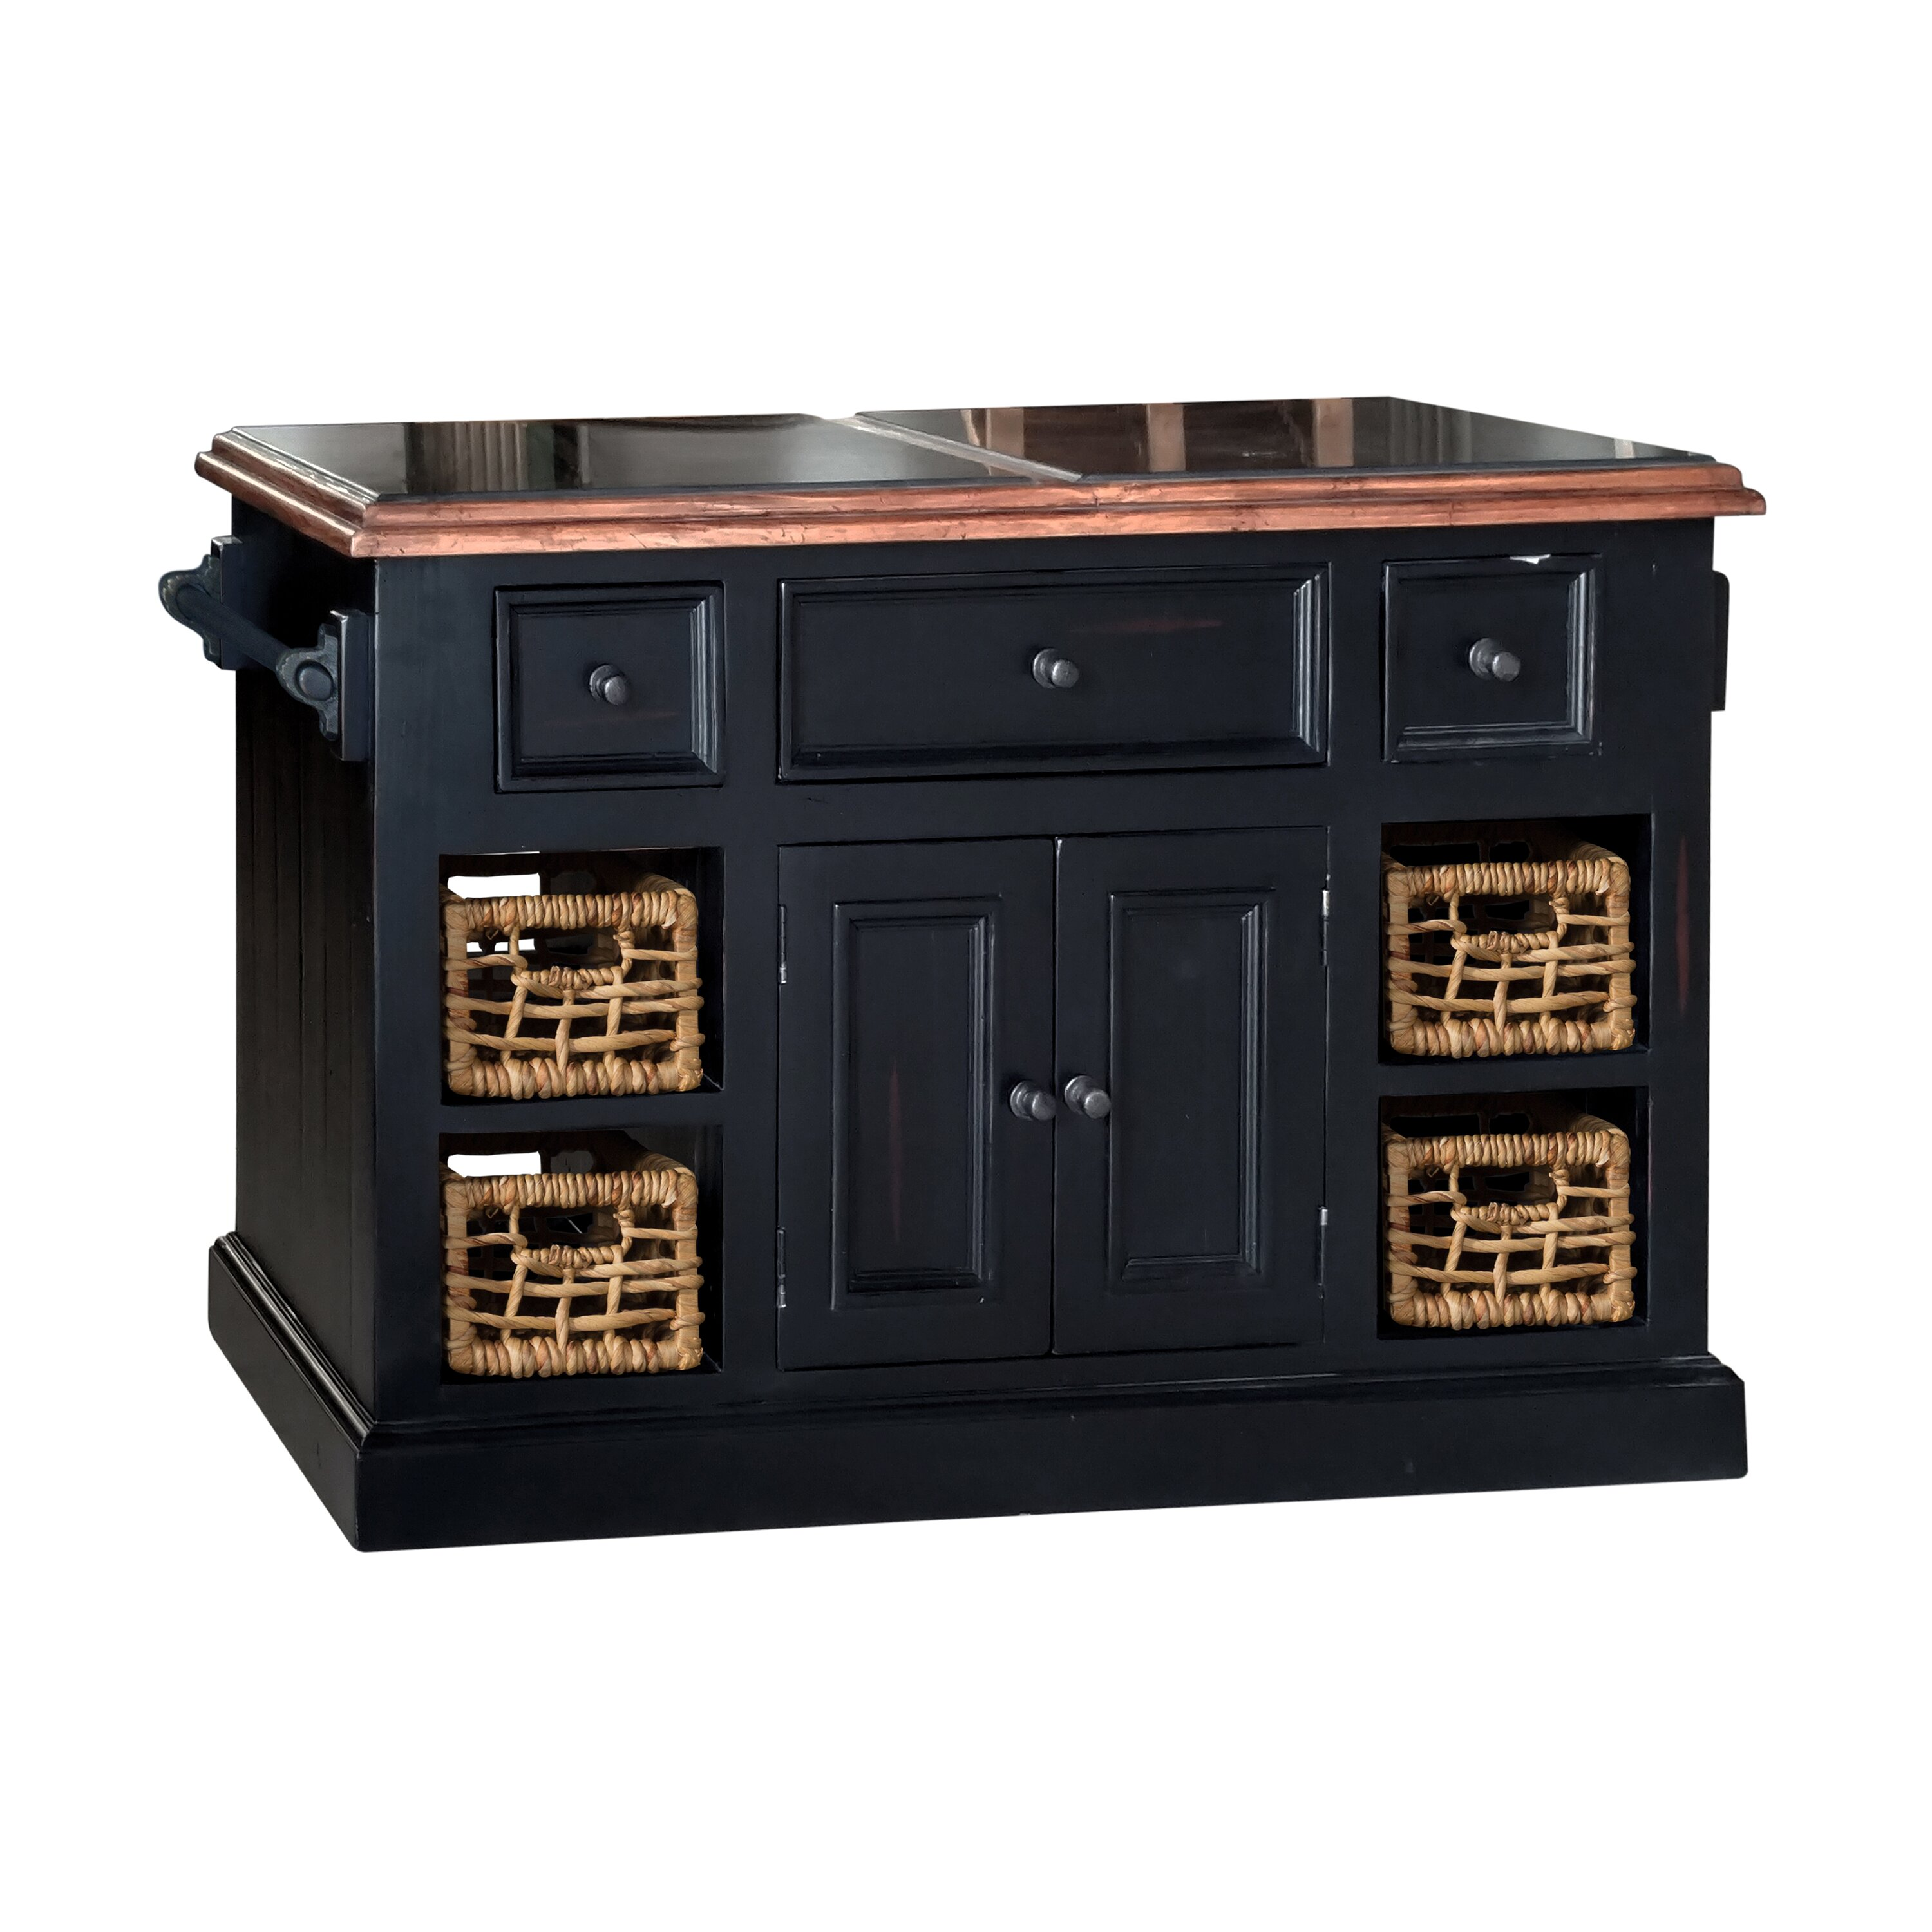 Kitchen Island With Marble Top: Laurel Foundry Modern Farmhouse Zula Kitchen Island With